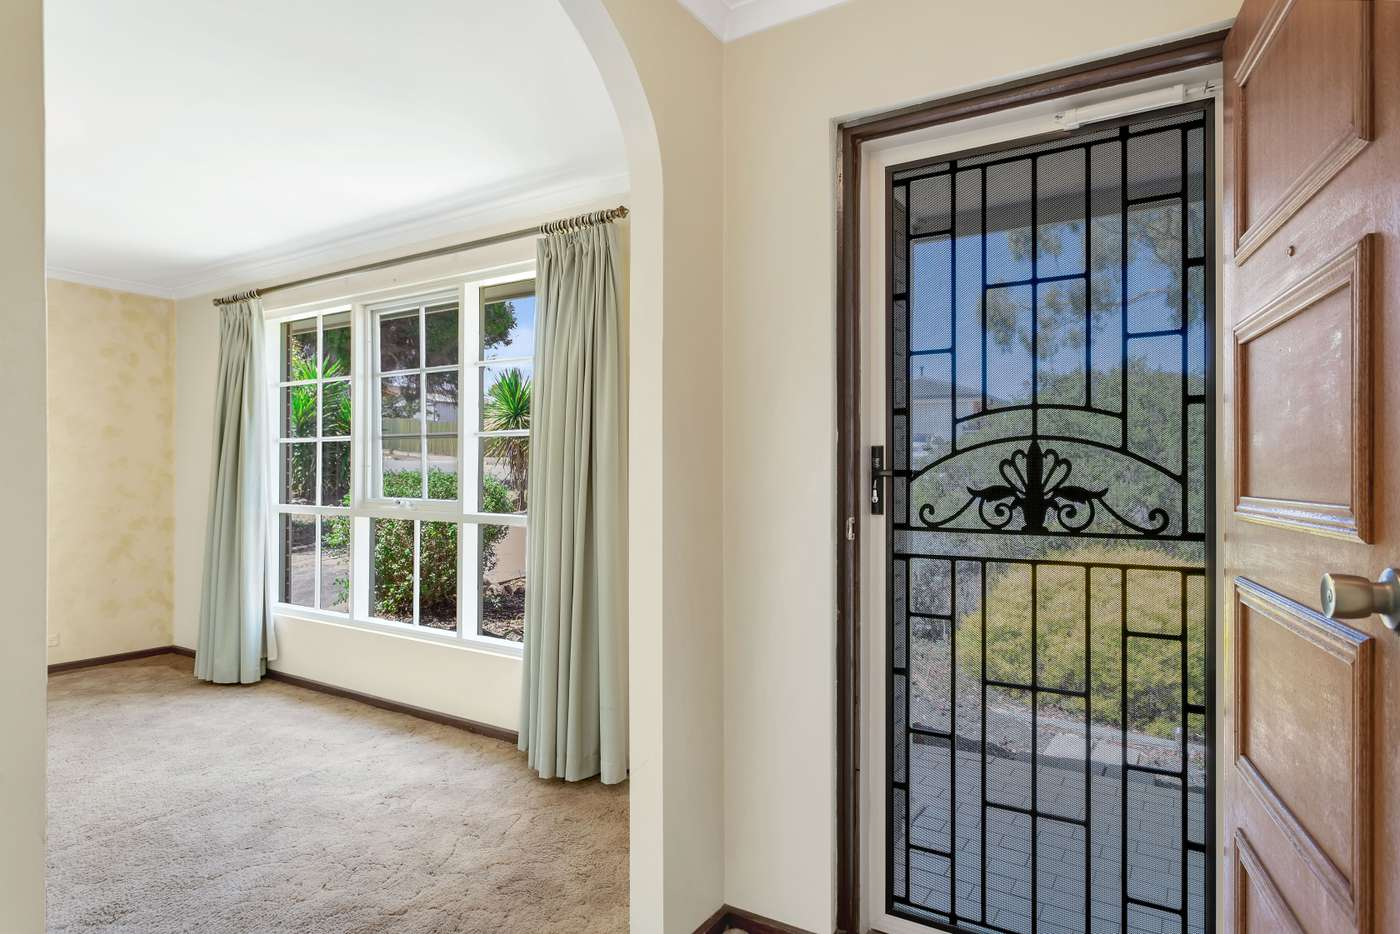 Fifth view of Homely house listing, 7 Angela Street, Reynella SA 5161